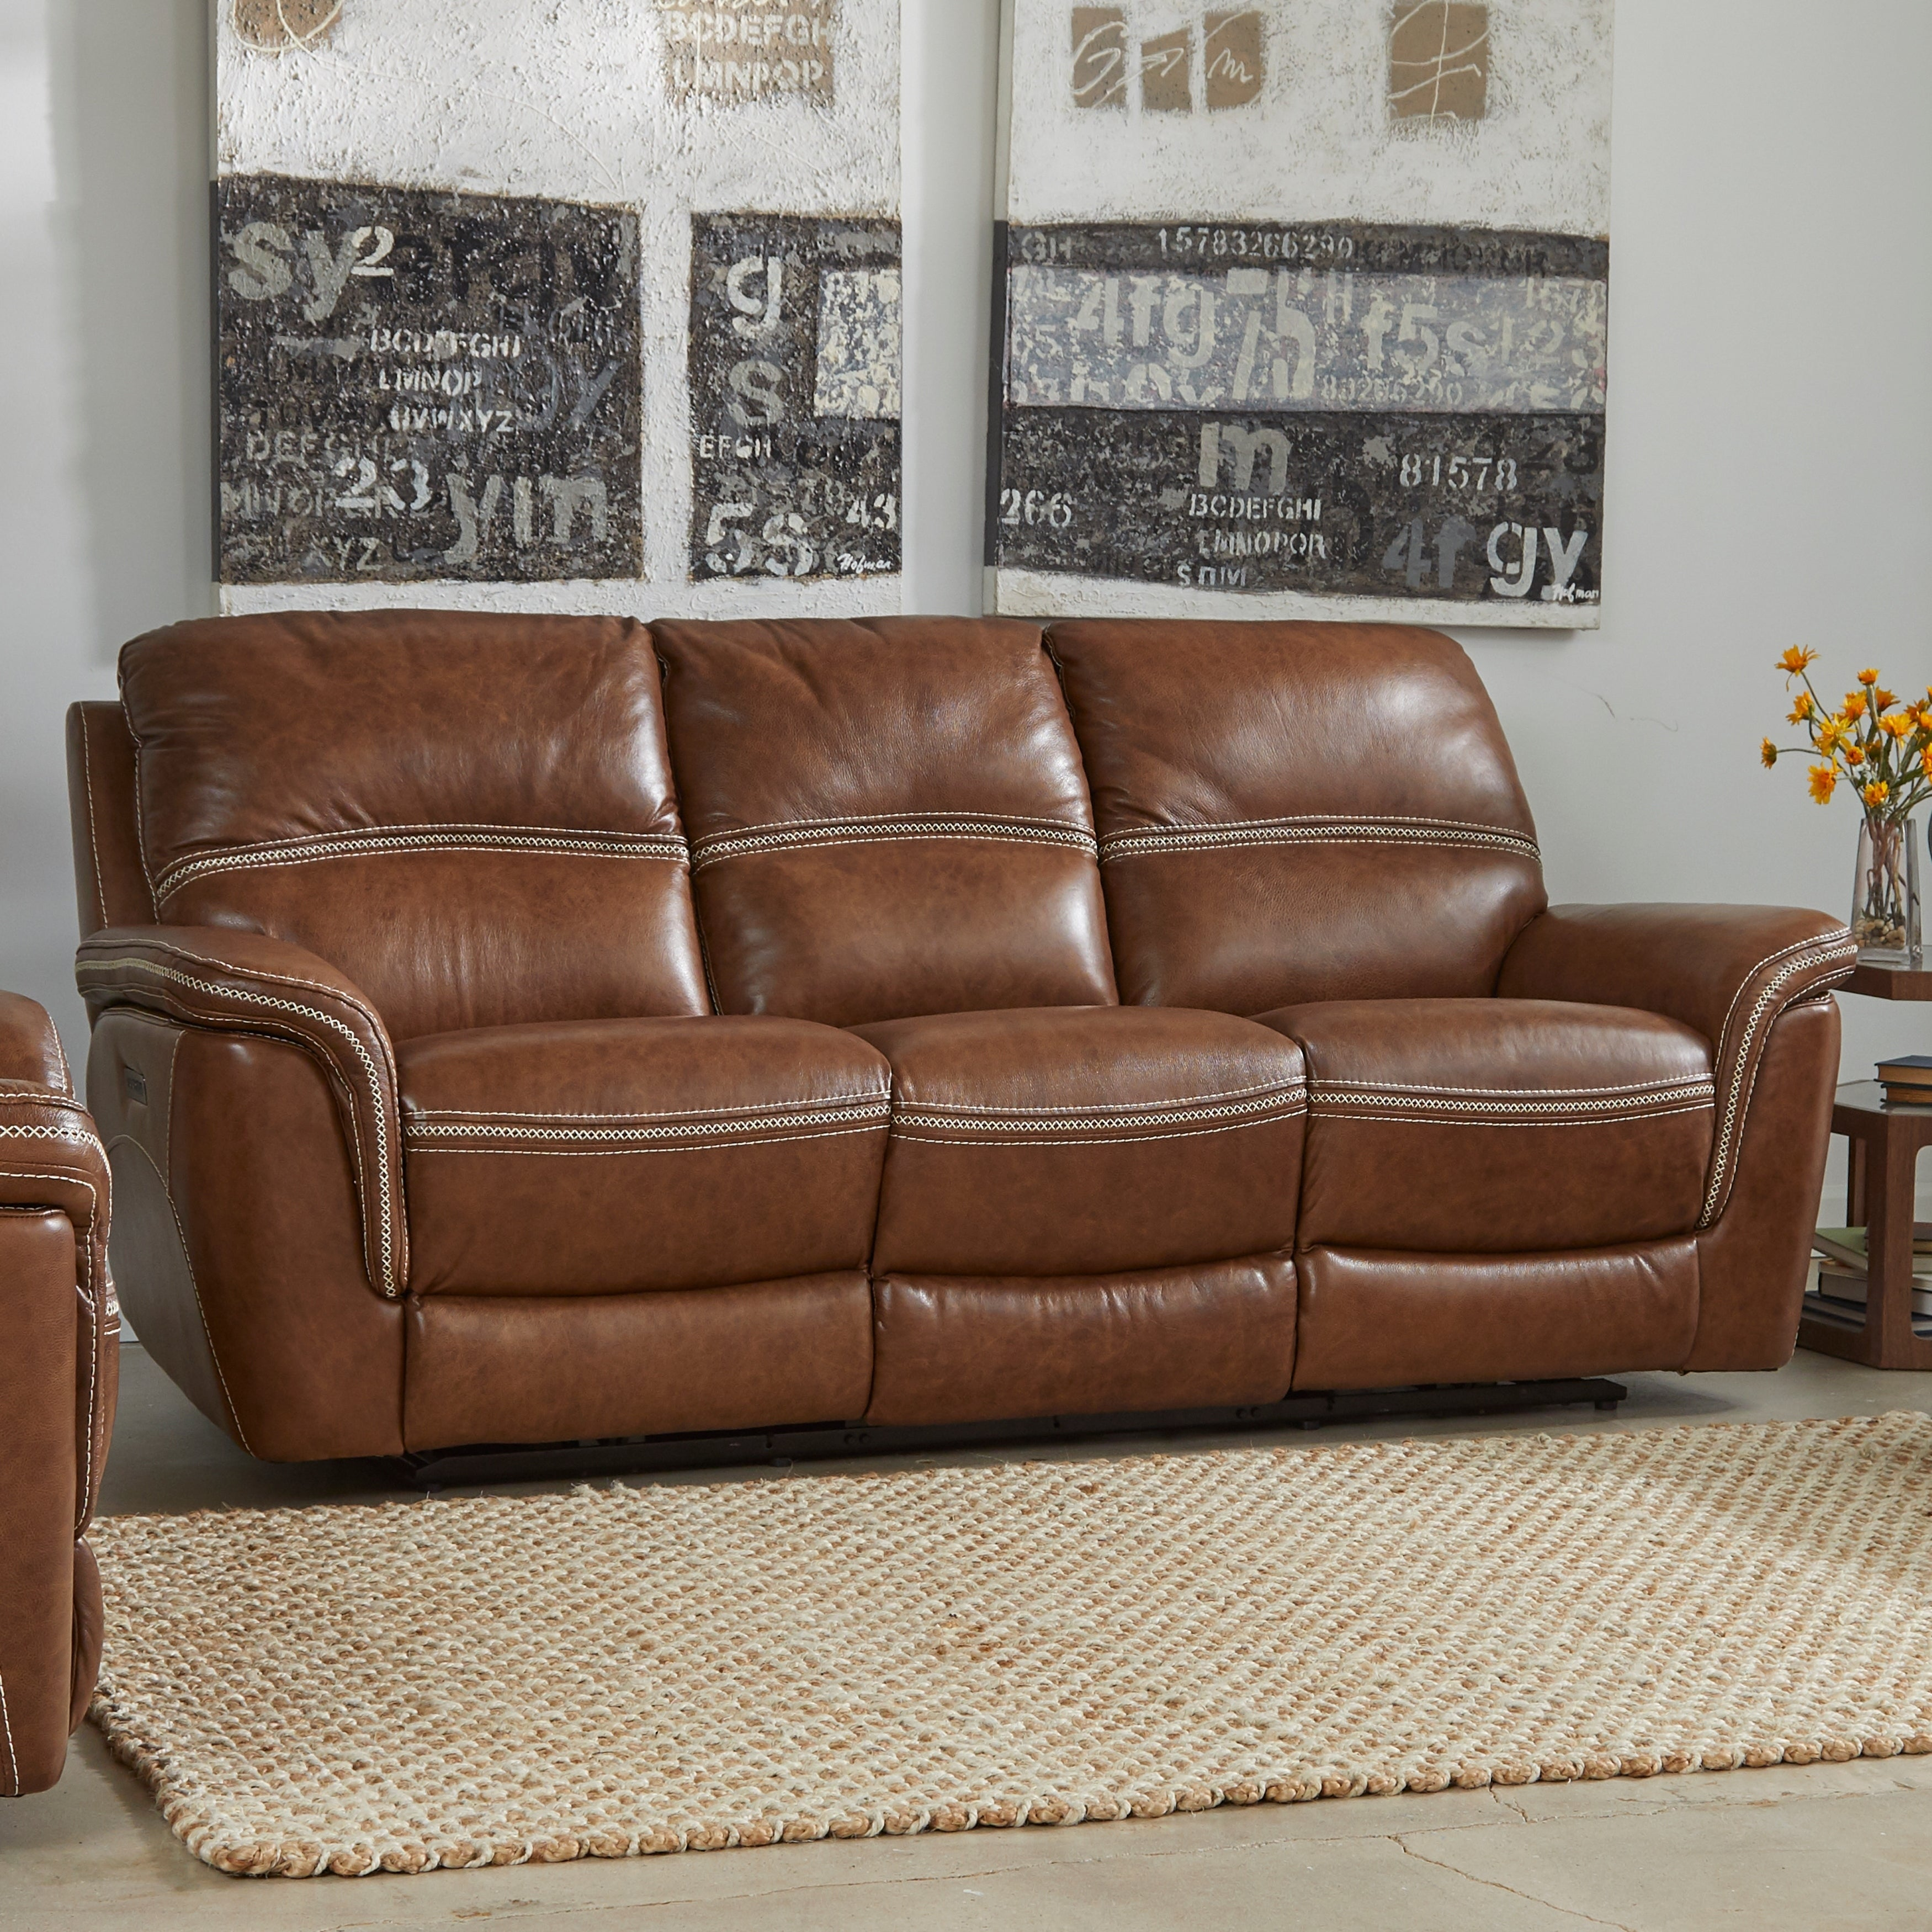 Mason Leather Reclining Sofa With Power Headrest And Lumbar Support 40 Inches High X 90 Inches Wide X 40 Inches Deep